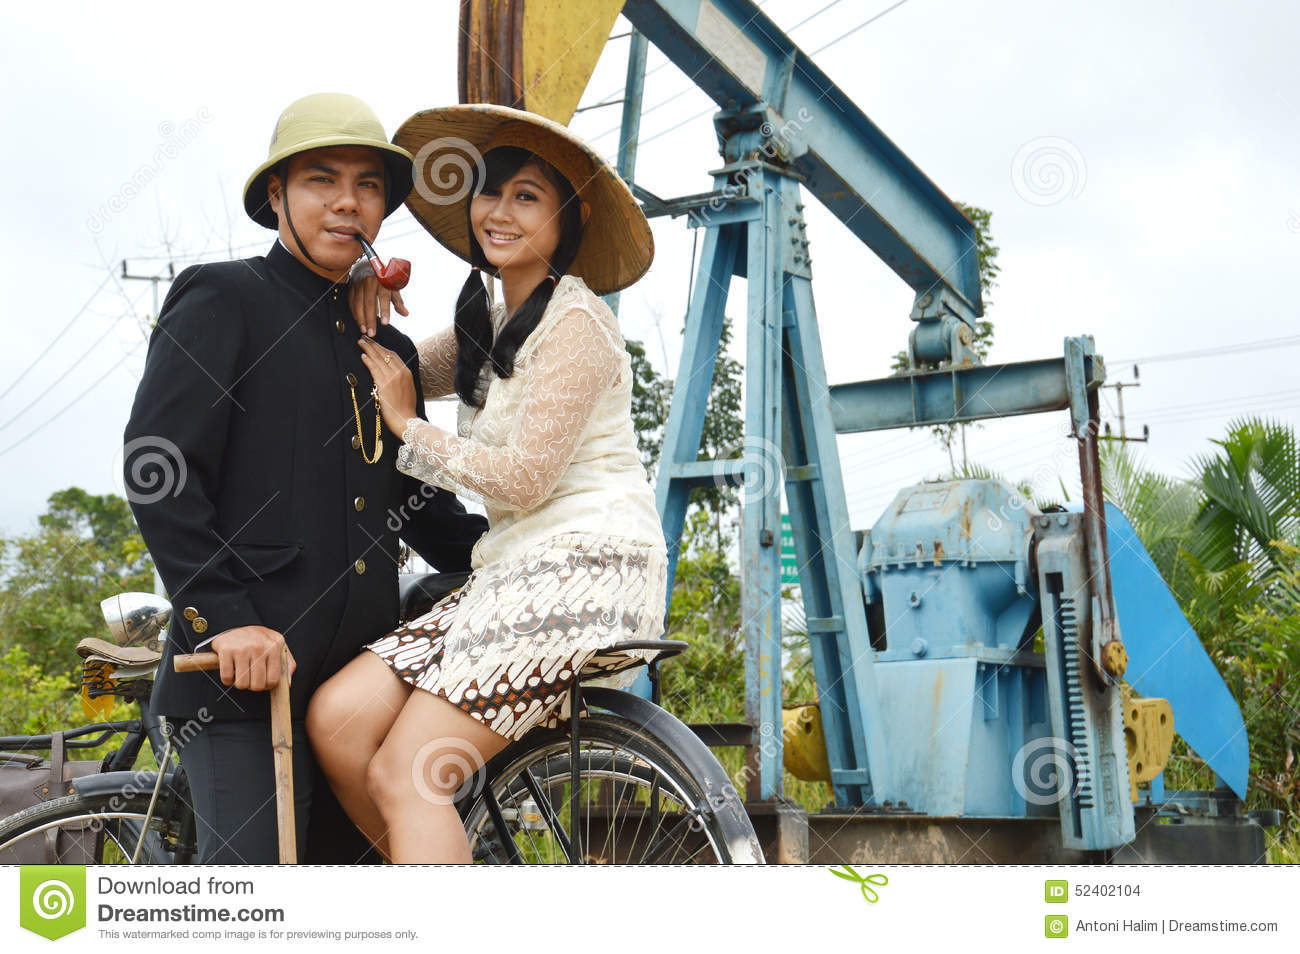 Indonesian dating customs